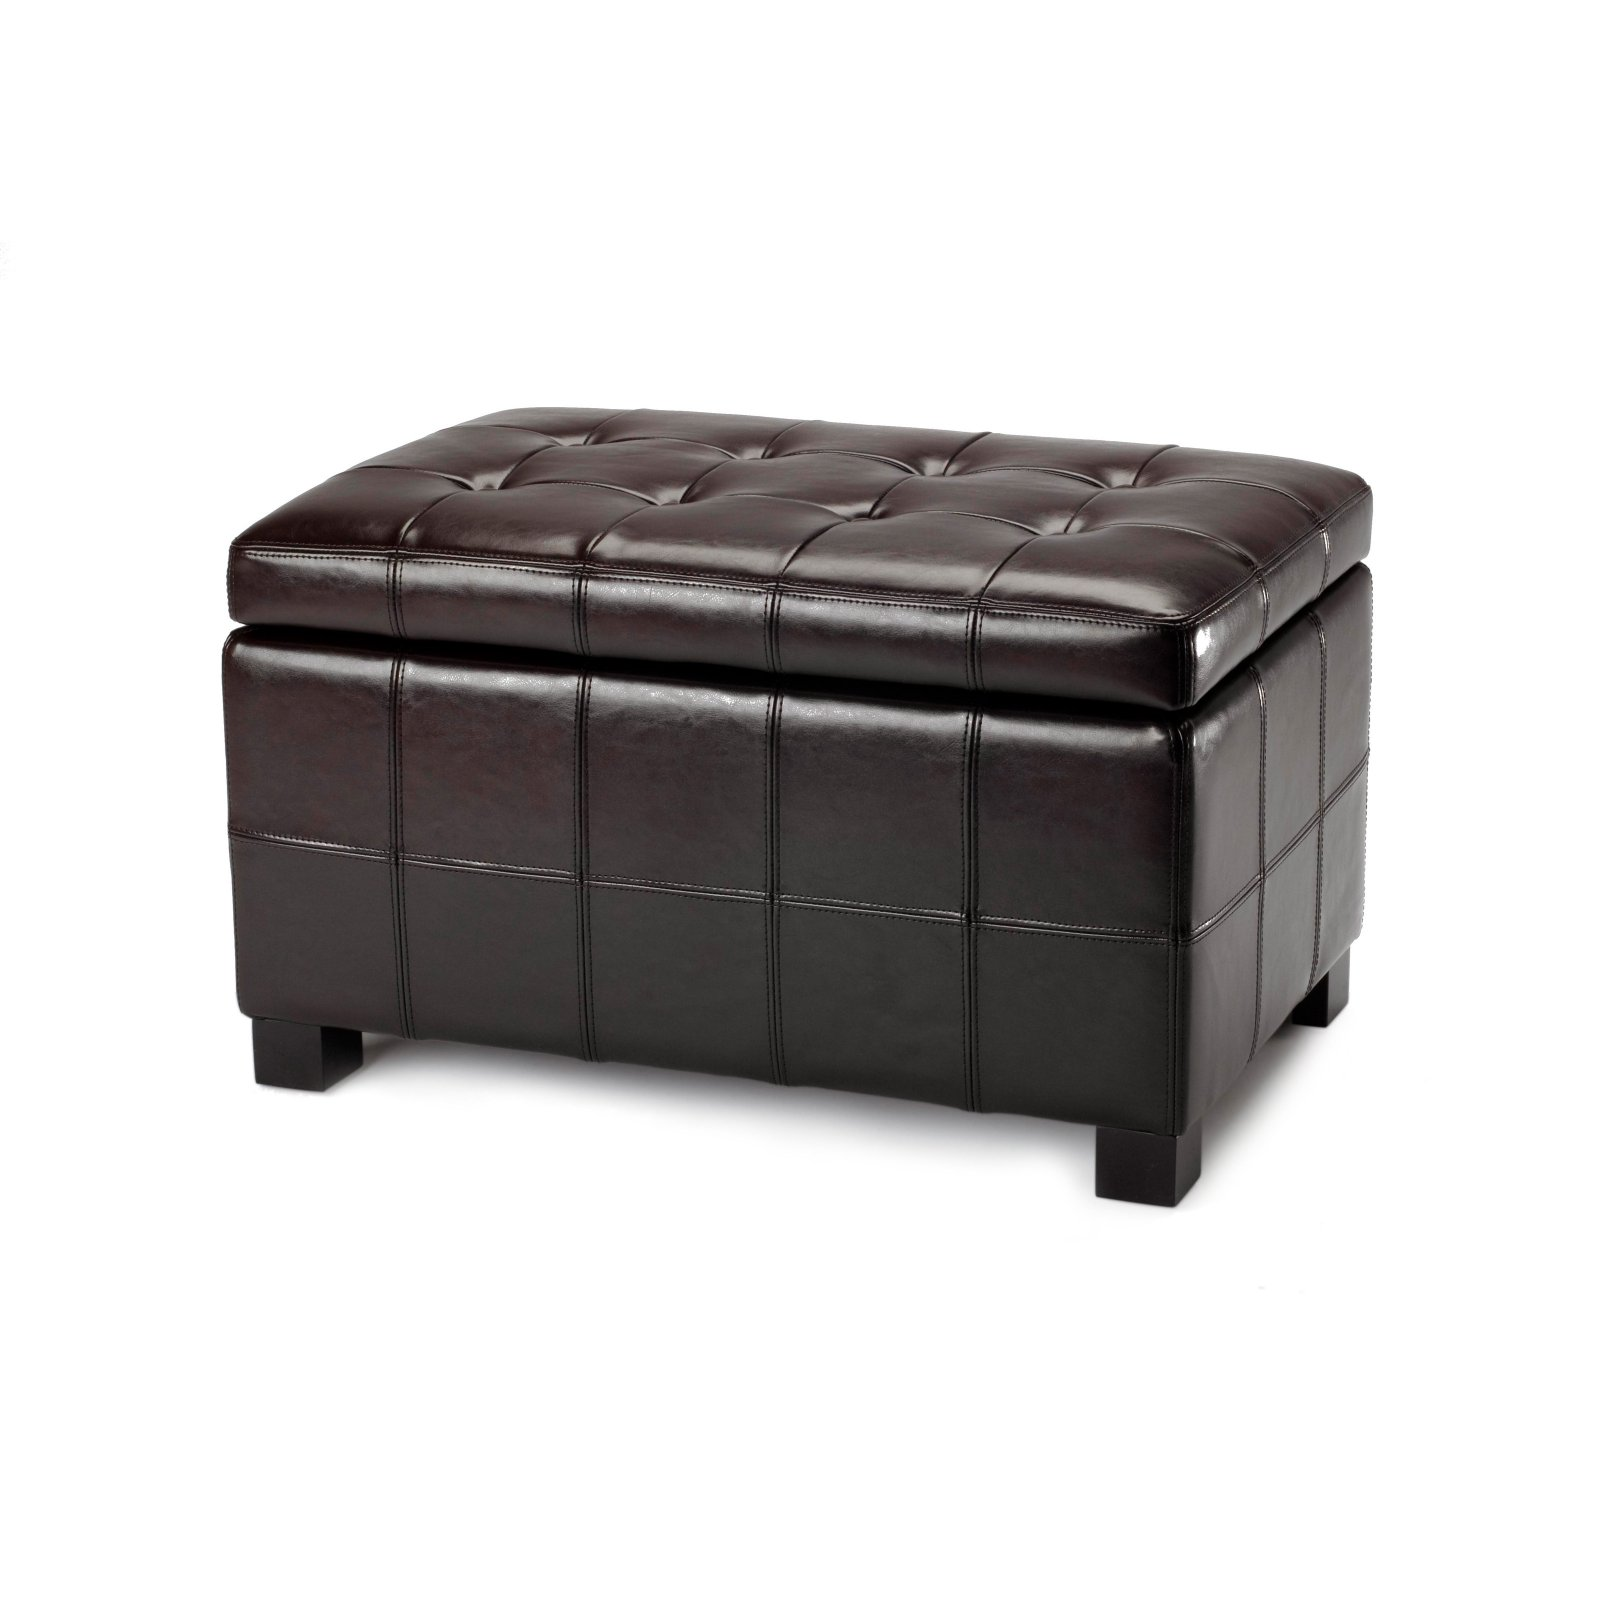 Genial Safavieh Small Brown Maiden Tufted Brown Leather Storage Ottoman